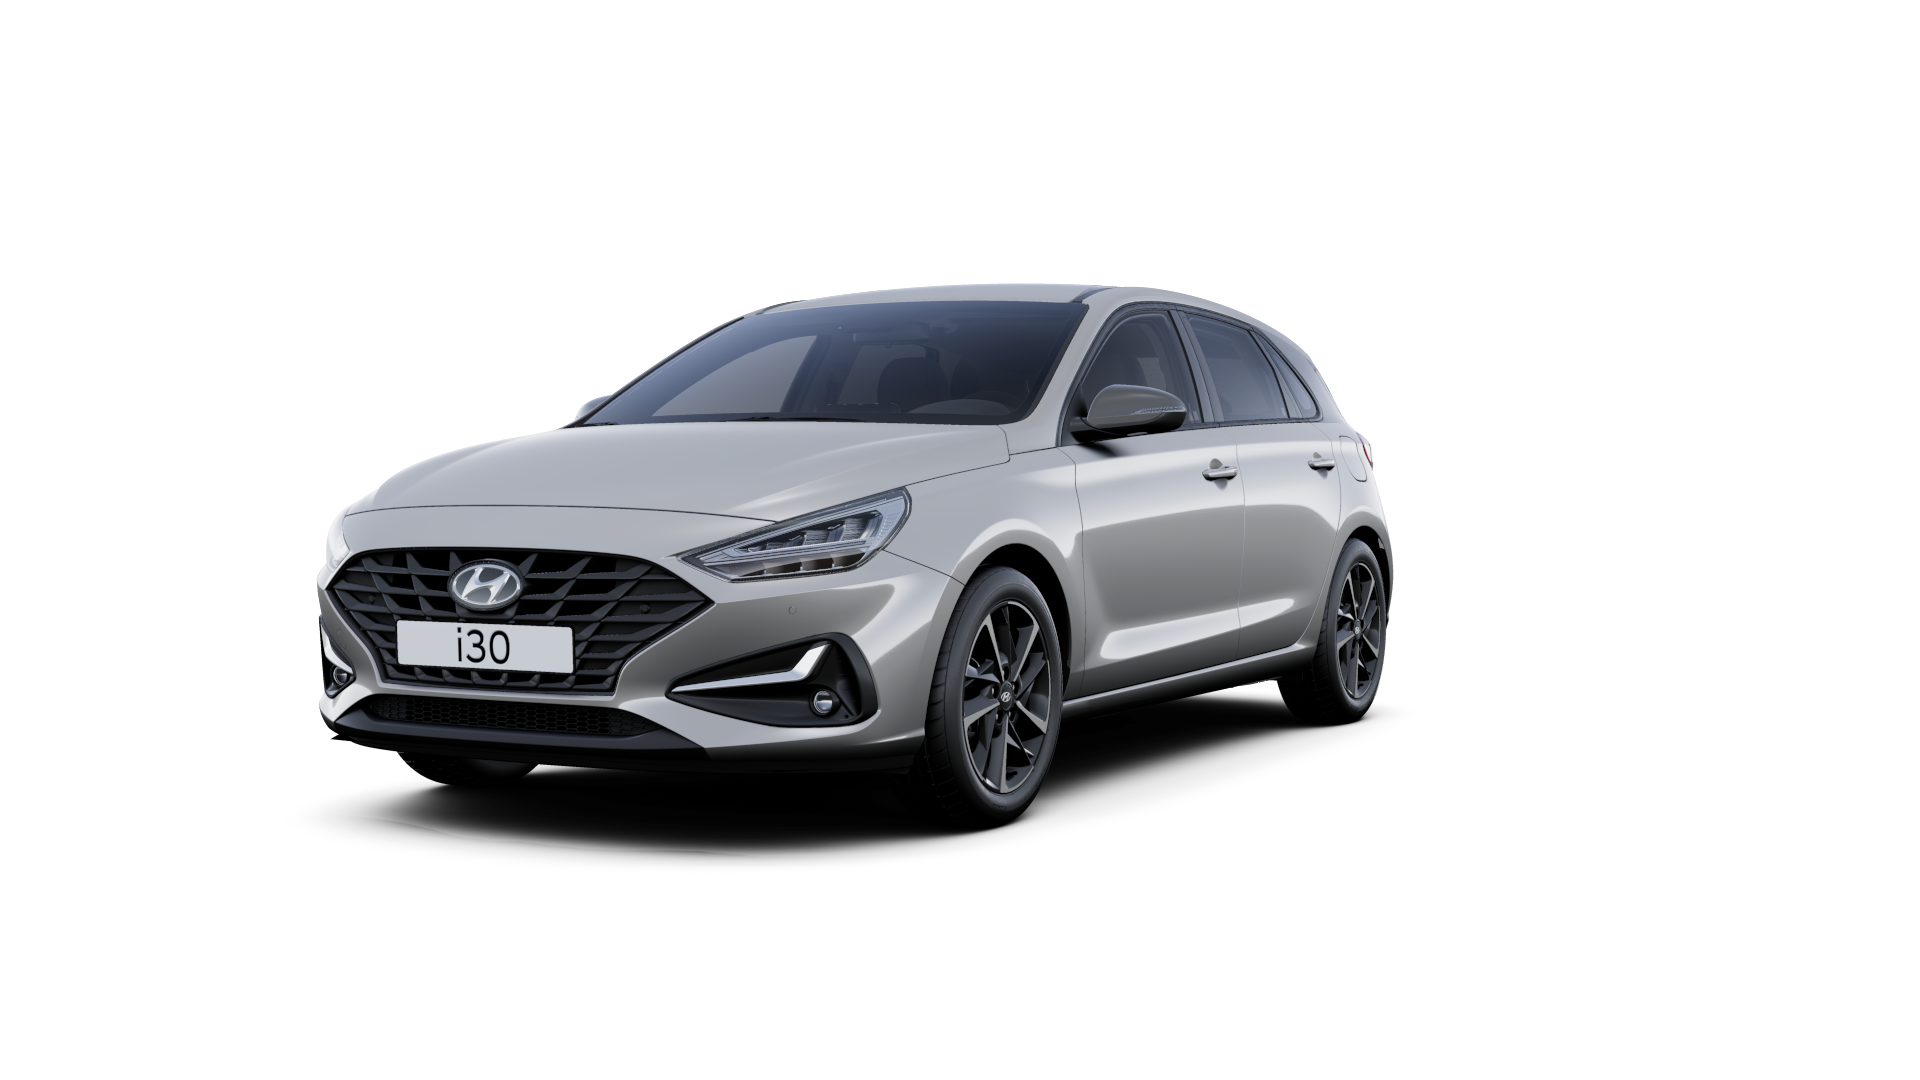 Front side view of the new Hyundai i30 in the colour Shimmering Silver.